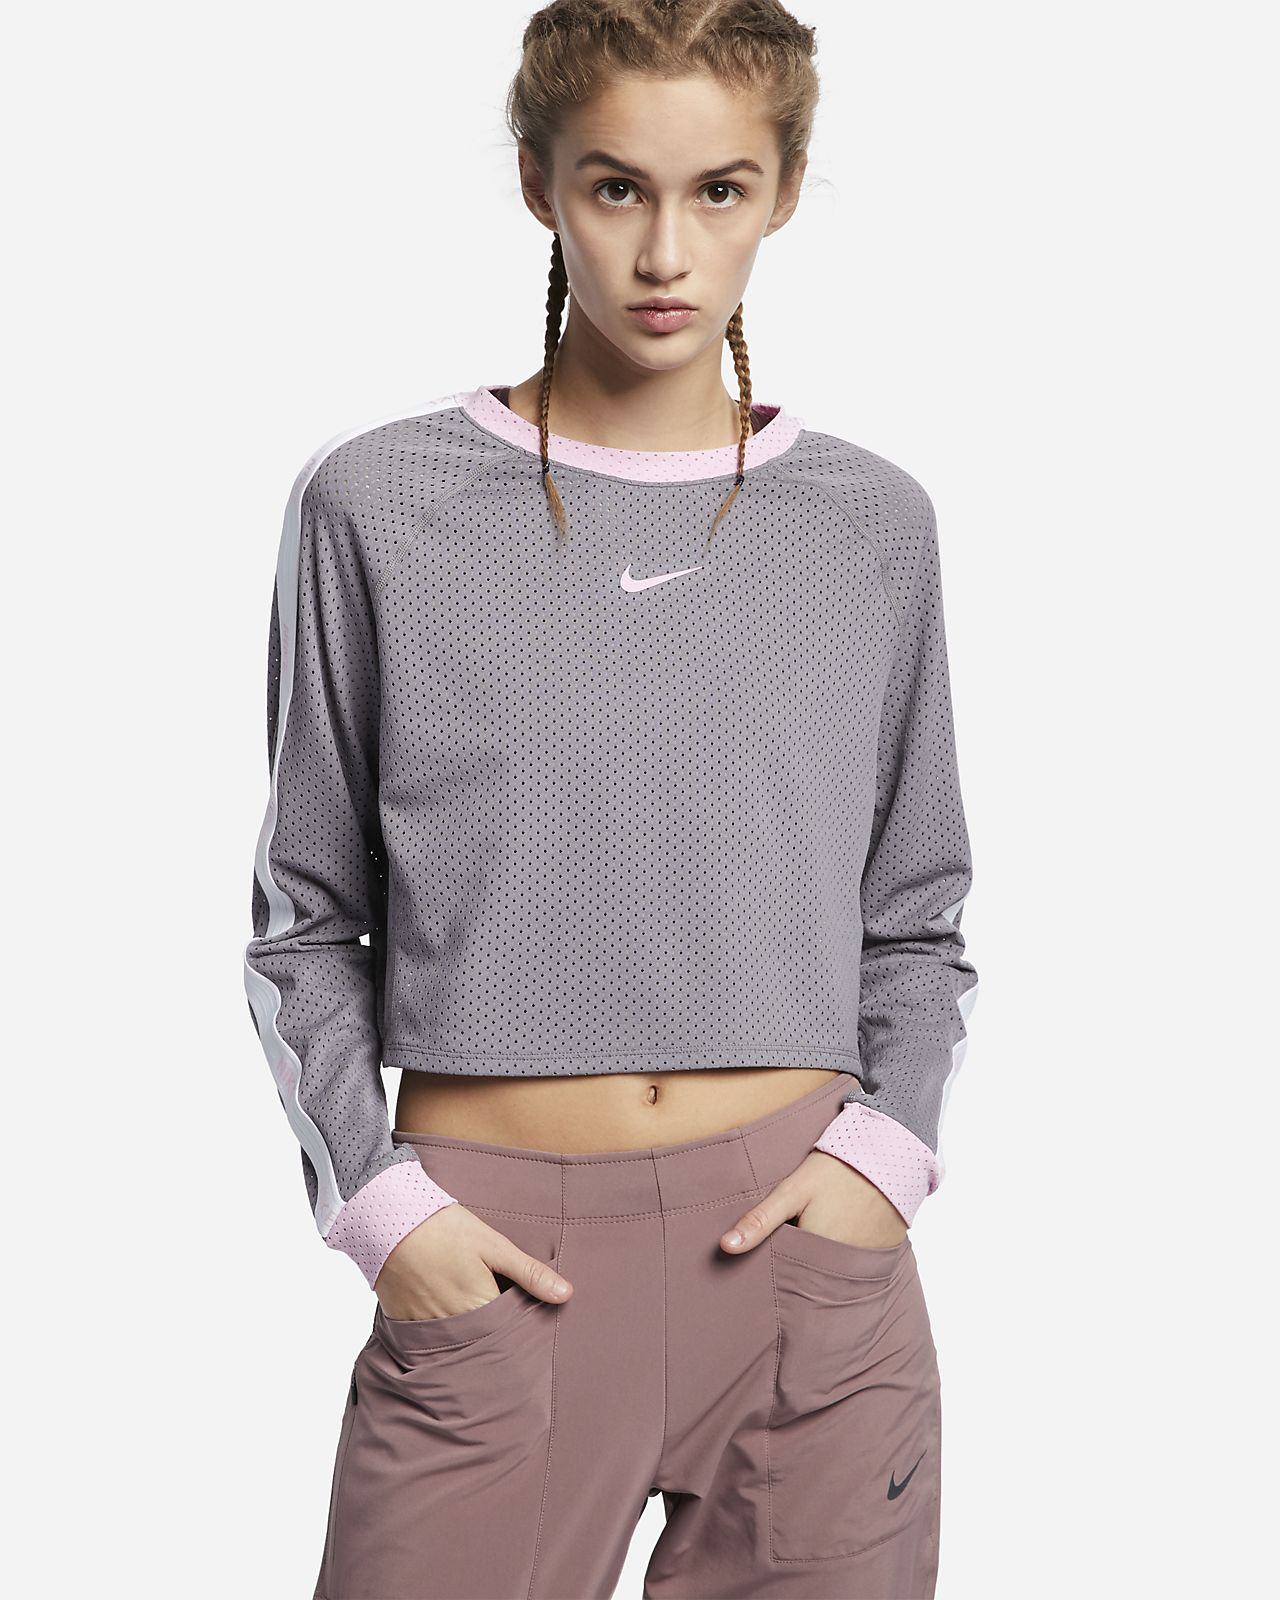 Nike Women's Floral Cropped Running Top